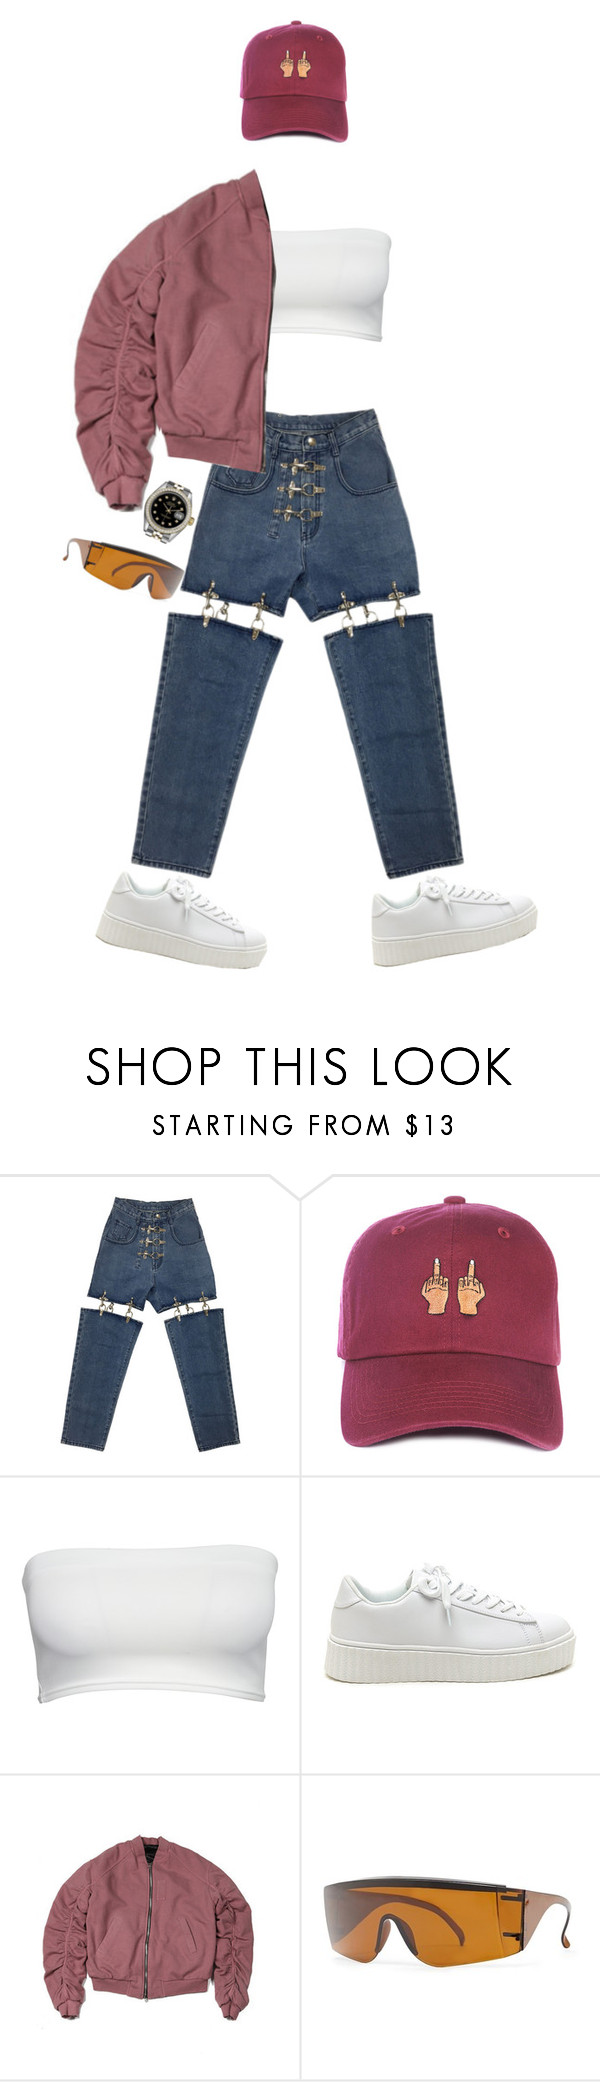 """""""Untitled #1709"""" by artiola-fejza ❤ liked on Polyvore featuring Forever 21 and Rolex"""